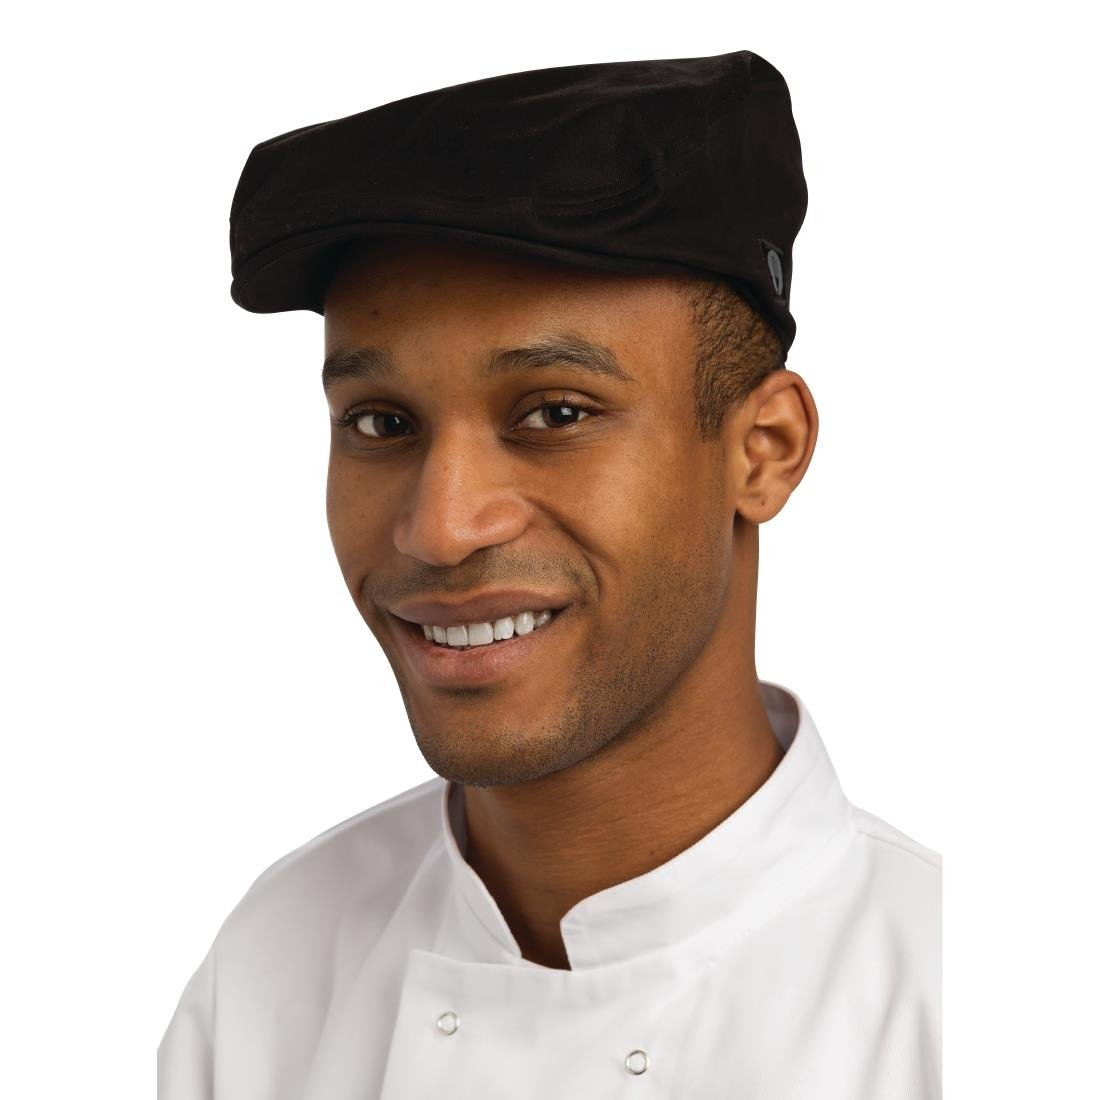 Chef Works Driver Cap Black - P B169 - Buy Online at Nisbets 18996406784